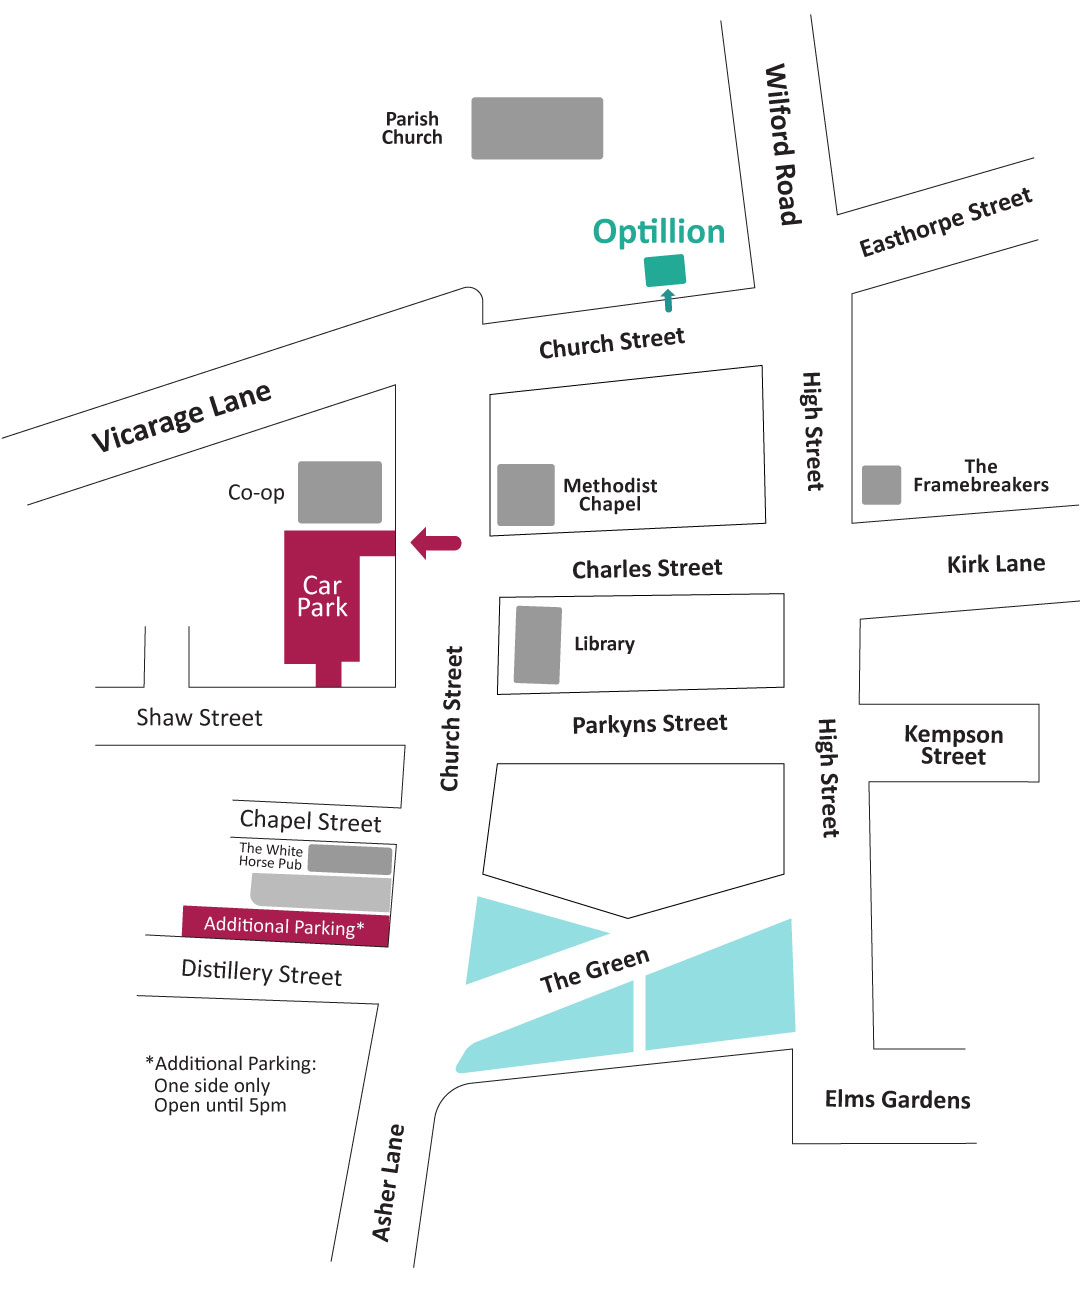 Ruddington street map showing location of Optillions offices